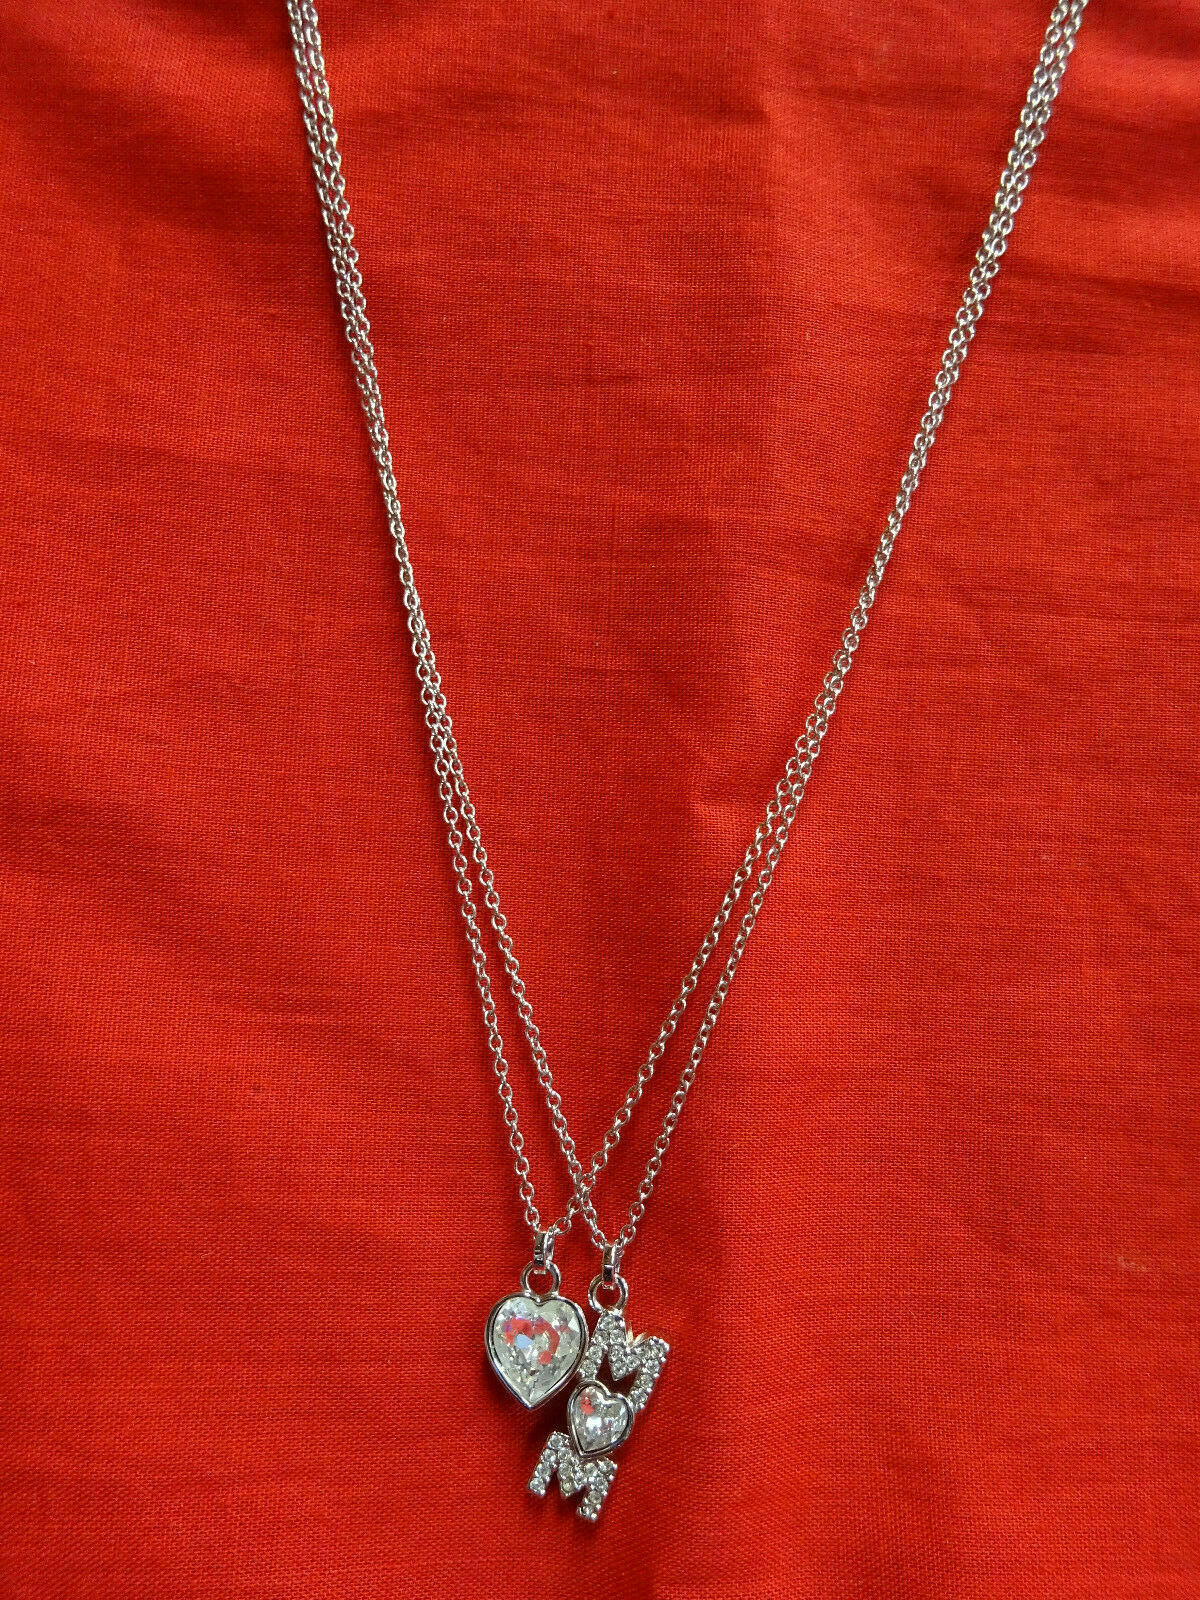 Authentic SWAROVSKI 2 Strand Silver Crystal Necklace Heart Mom Swan Signed w BOX image 2